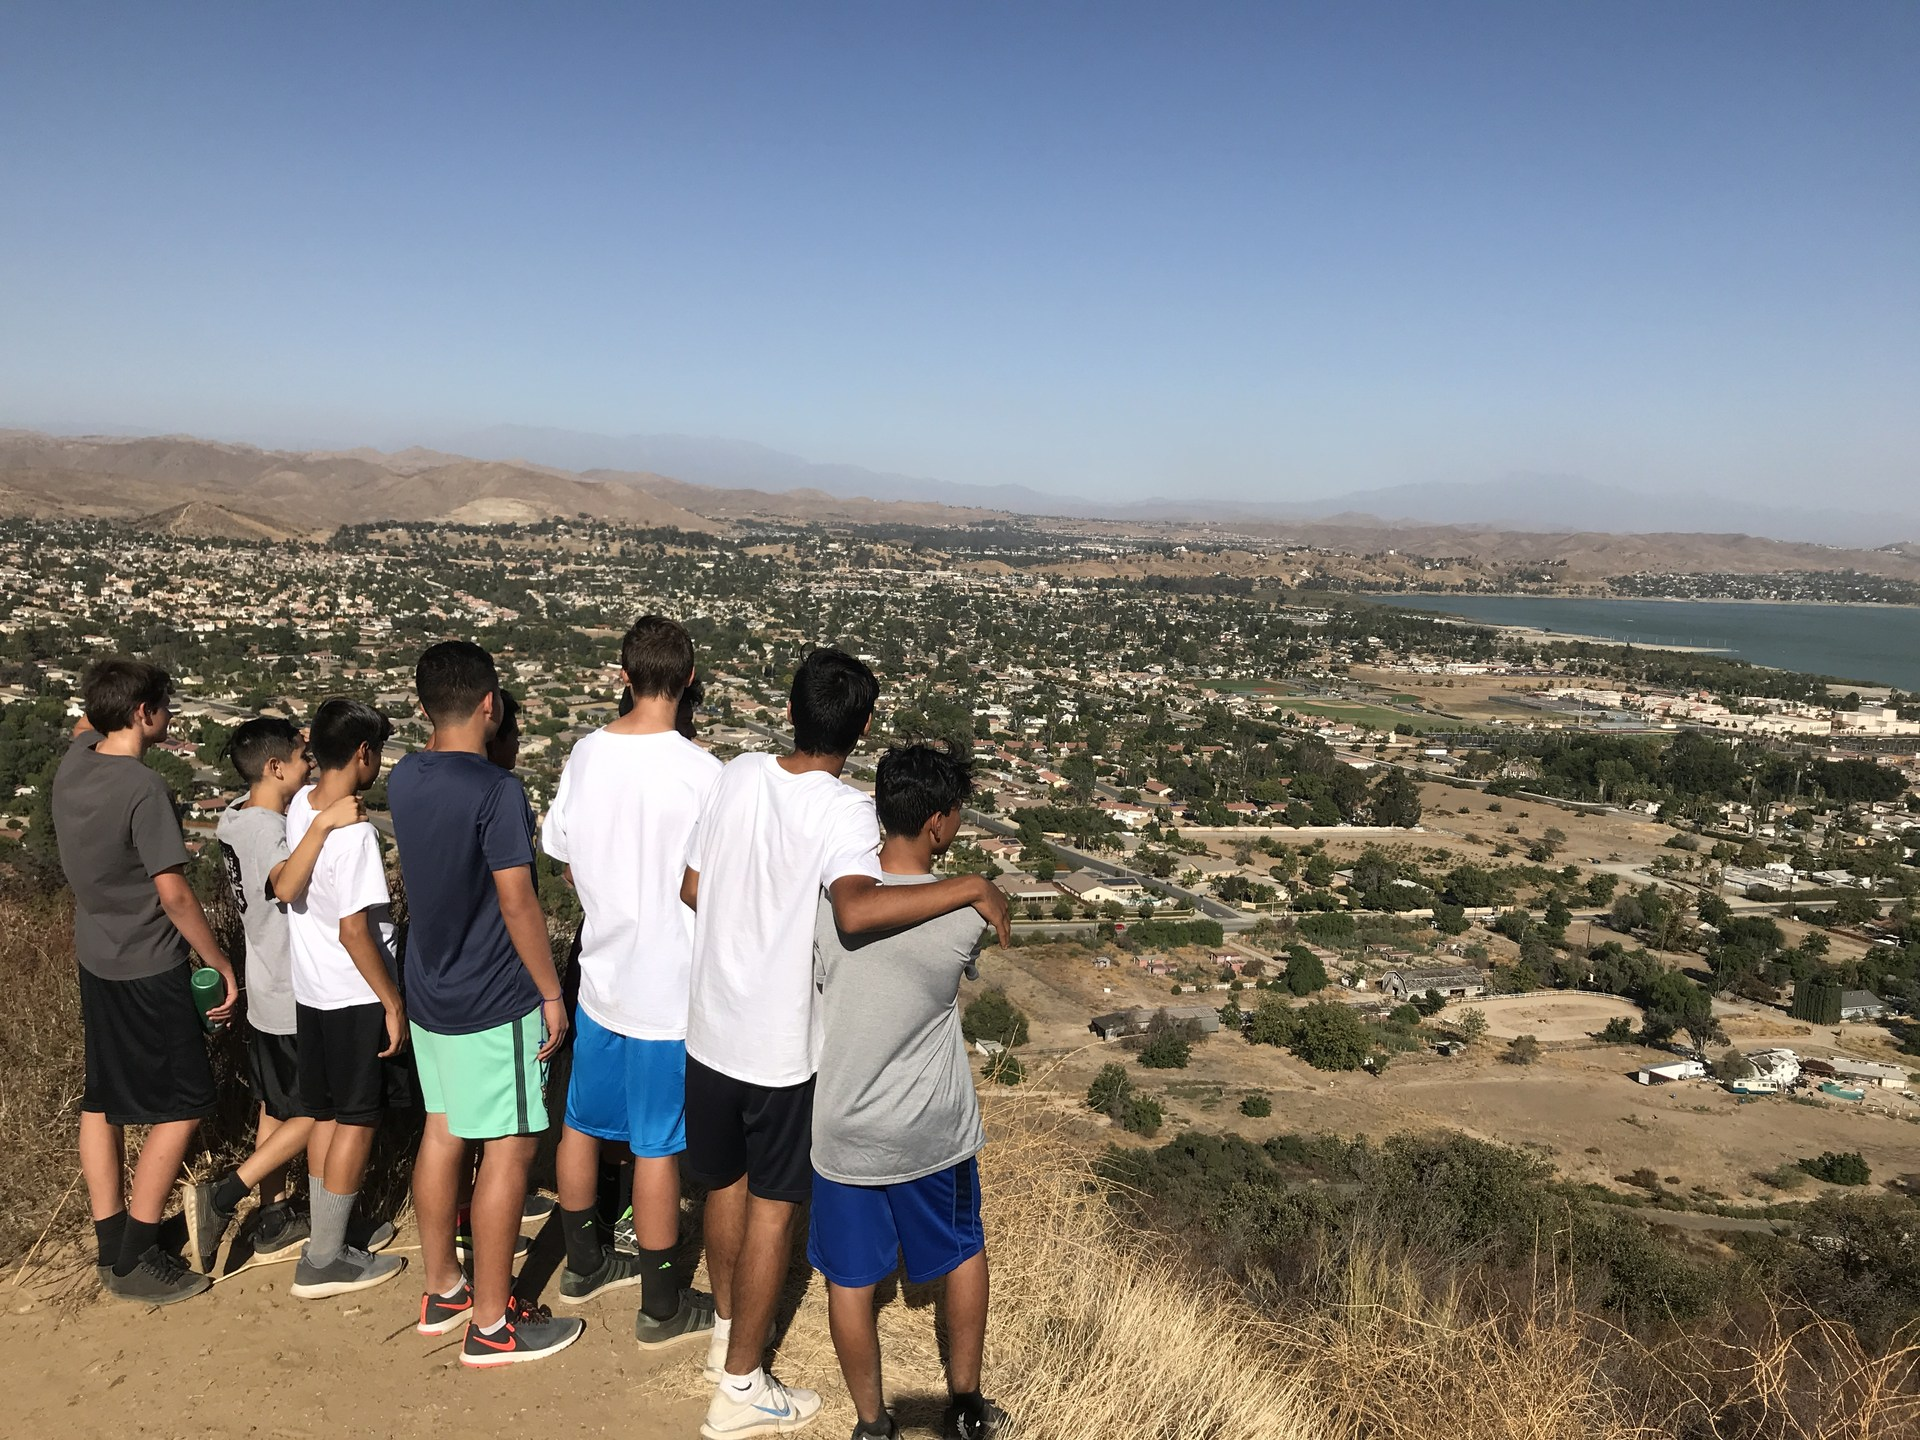 XC team looking at this great view